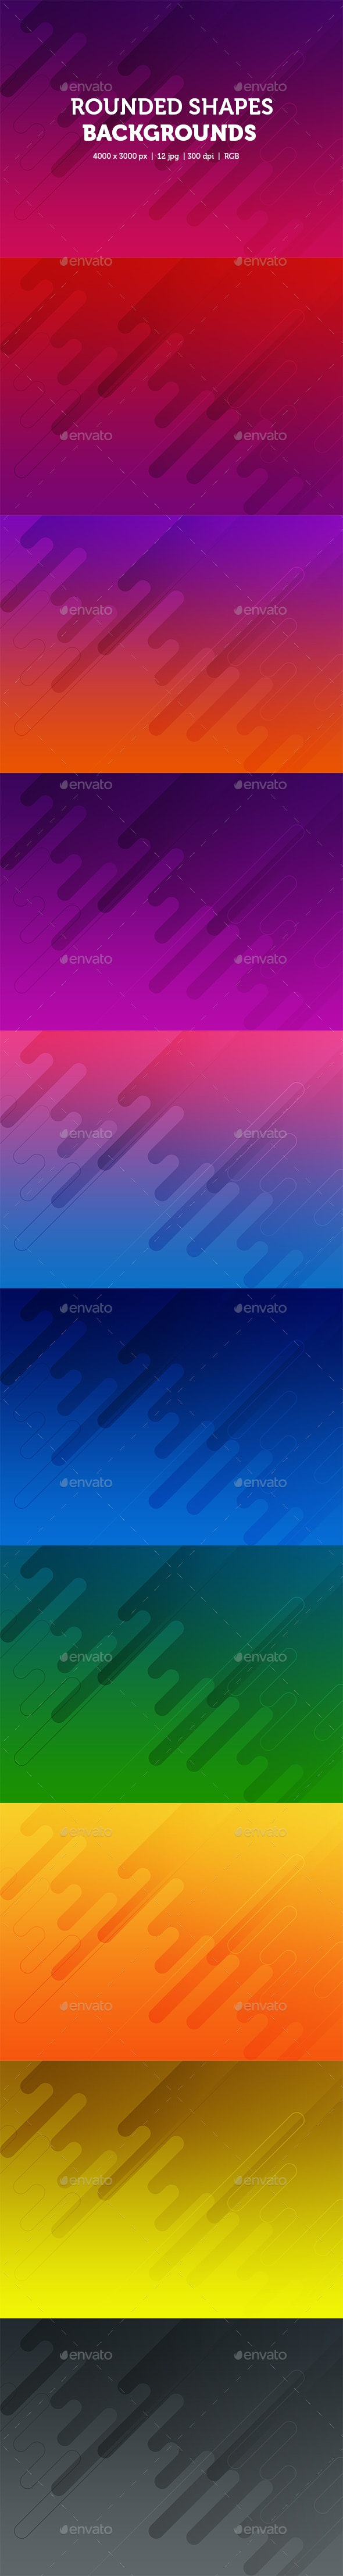 Abstract Rounded Shapes Backgrounds - Abstract Backgrounds